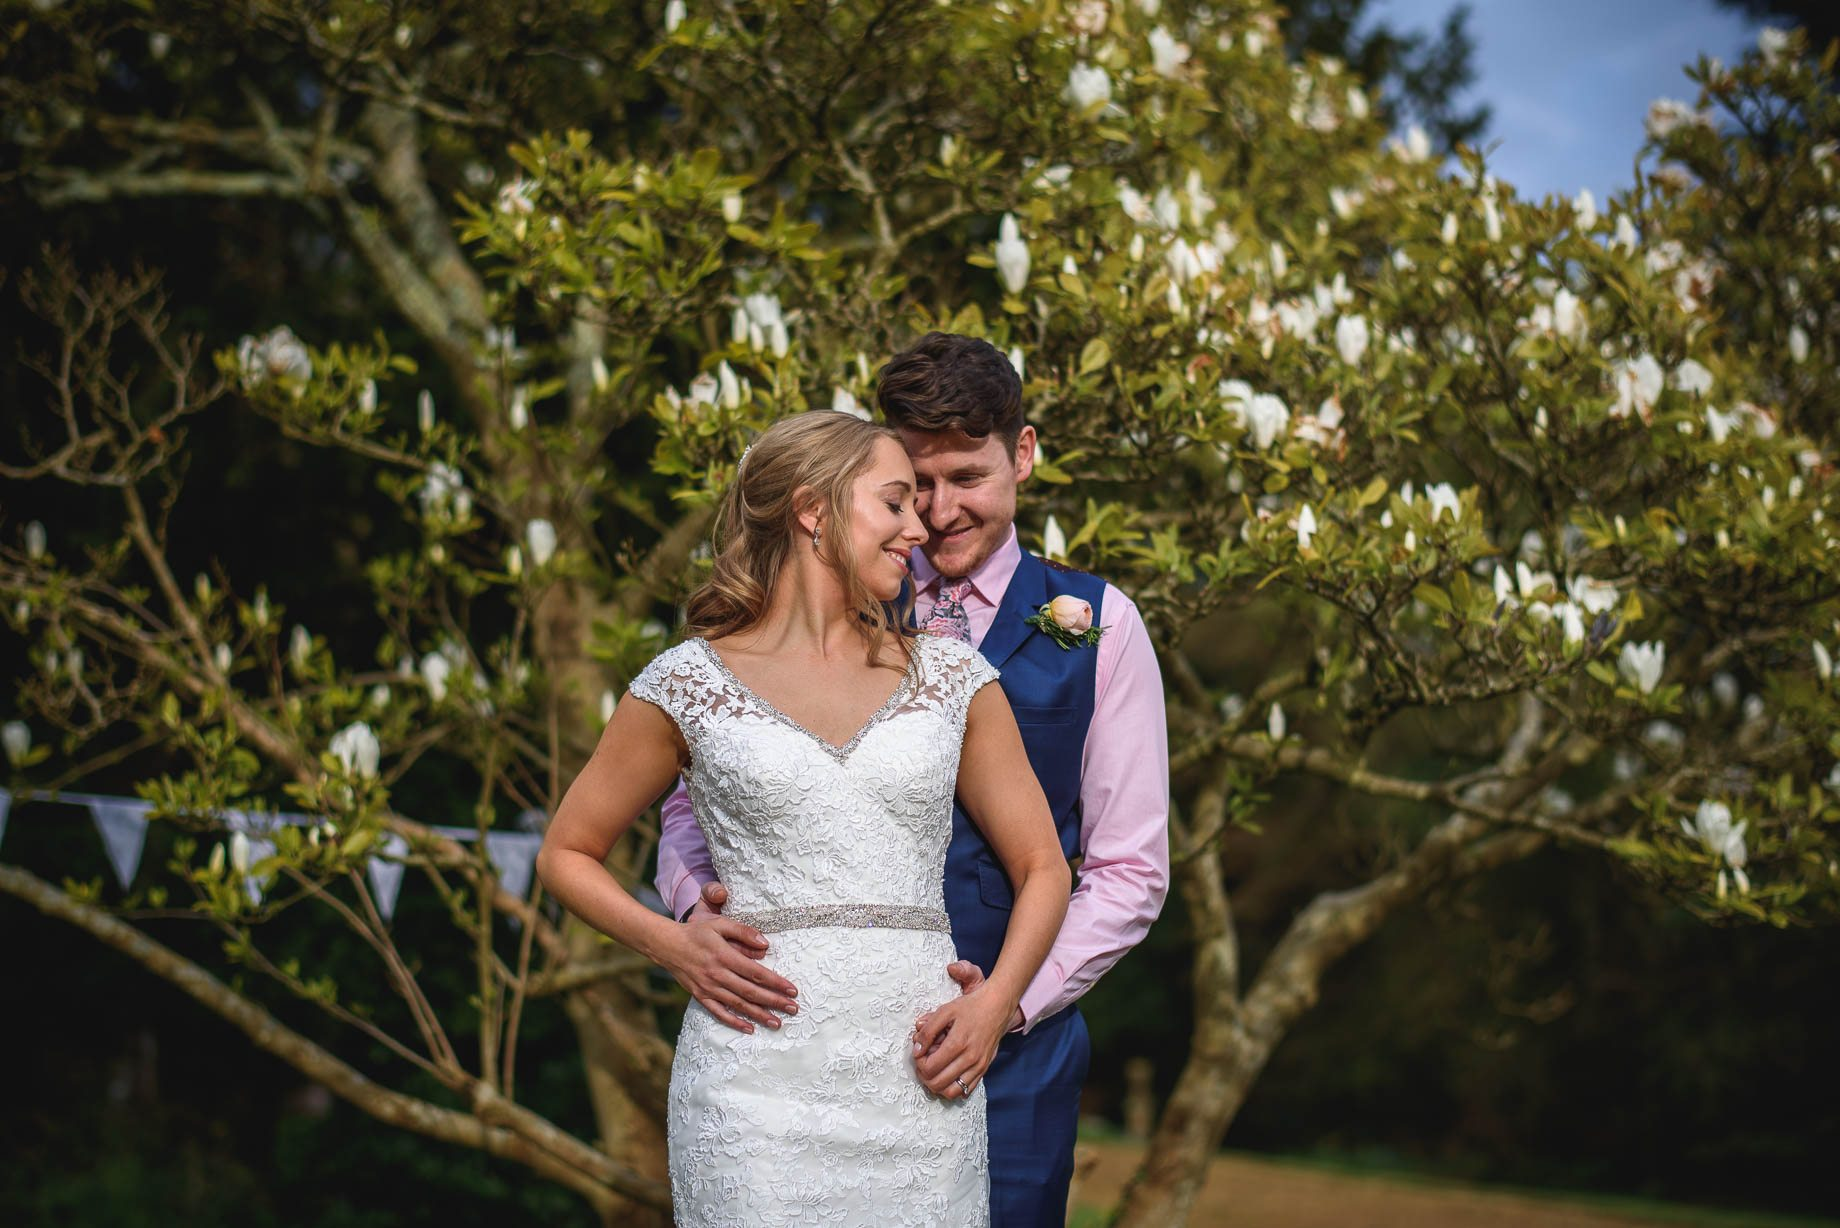 Hampshire wedding photography by Guy Collier - Emily and Tom (140 of 164)